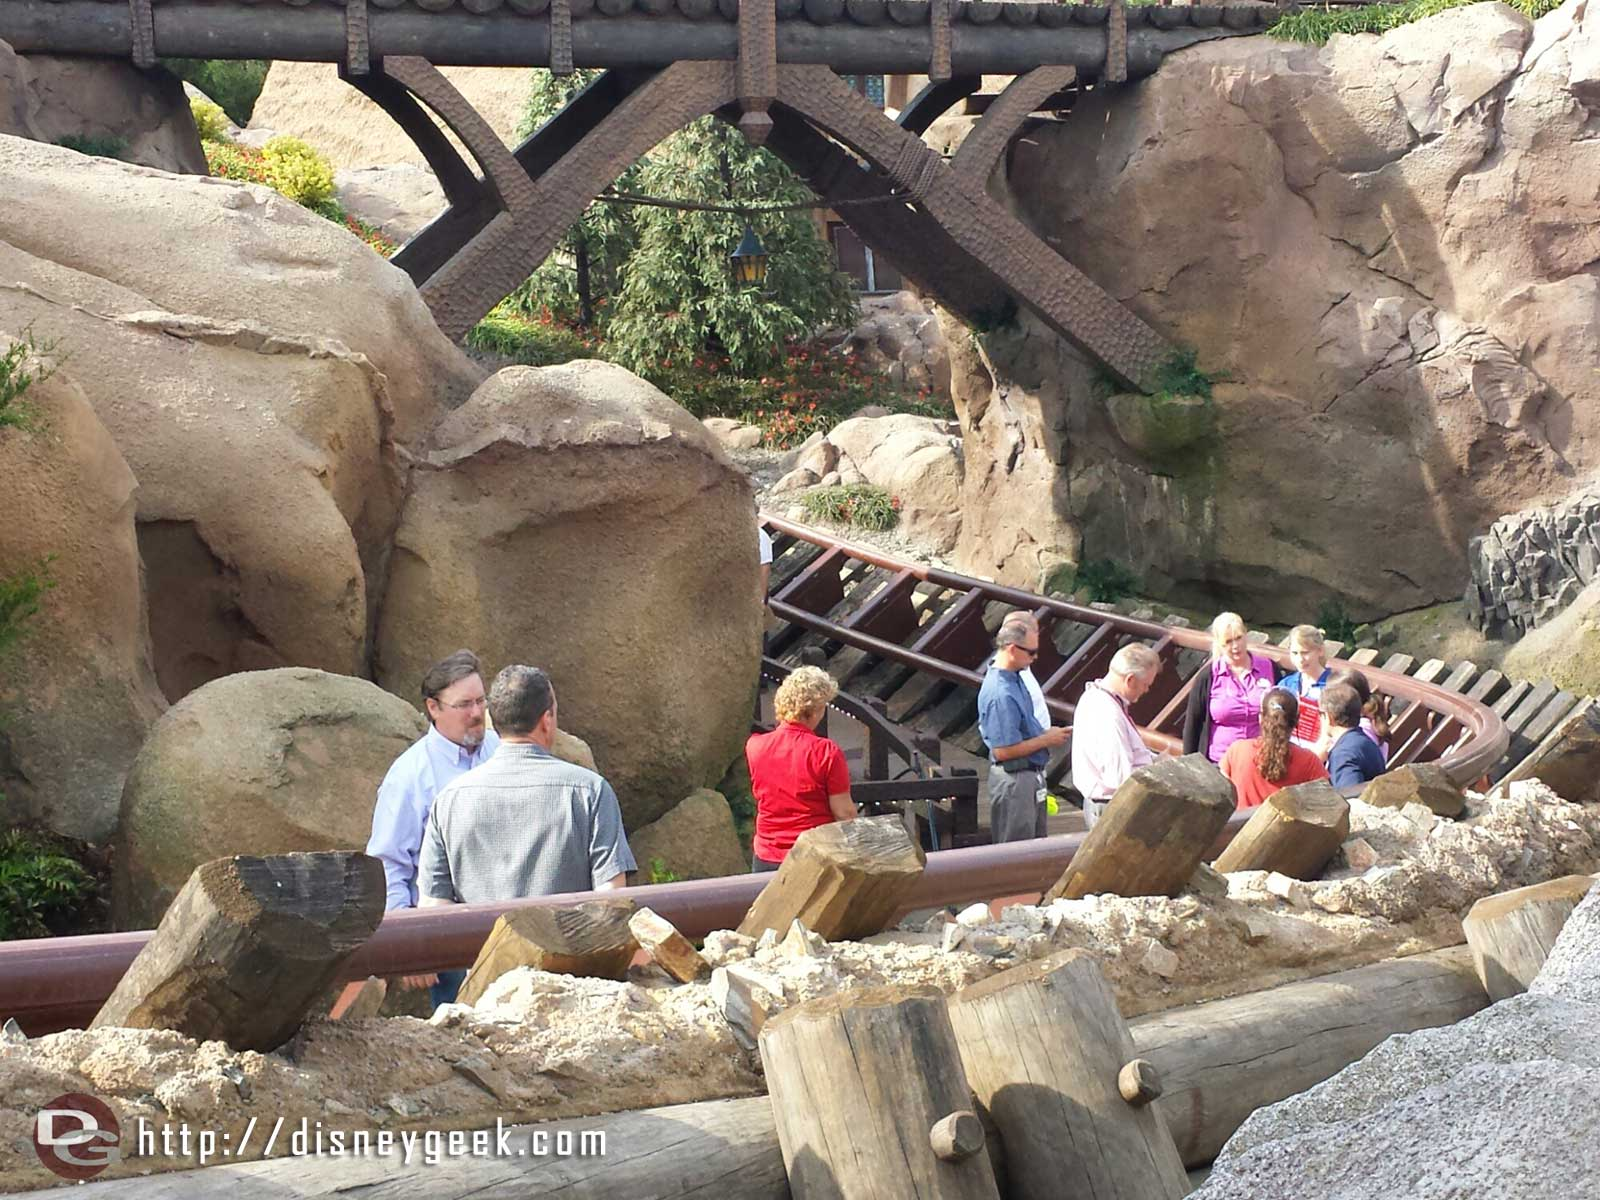 Some type of meeting going on along the Seven Dwarfs Mine Train track.  Looks to be a walkthrough/punch list check